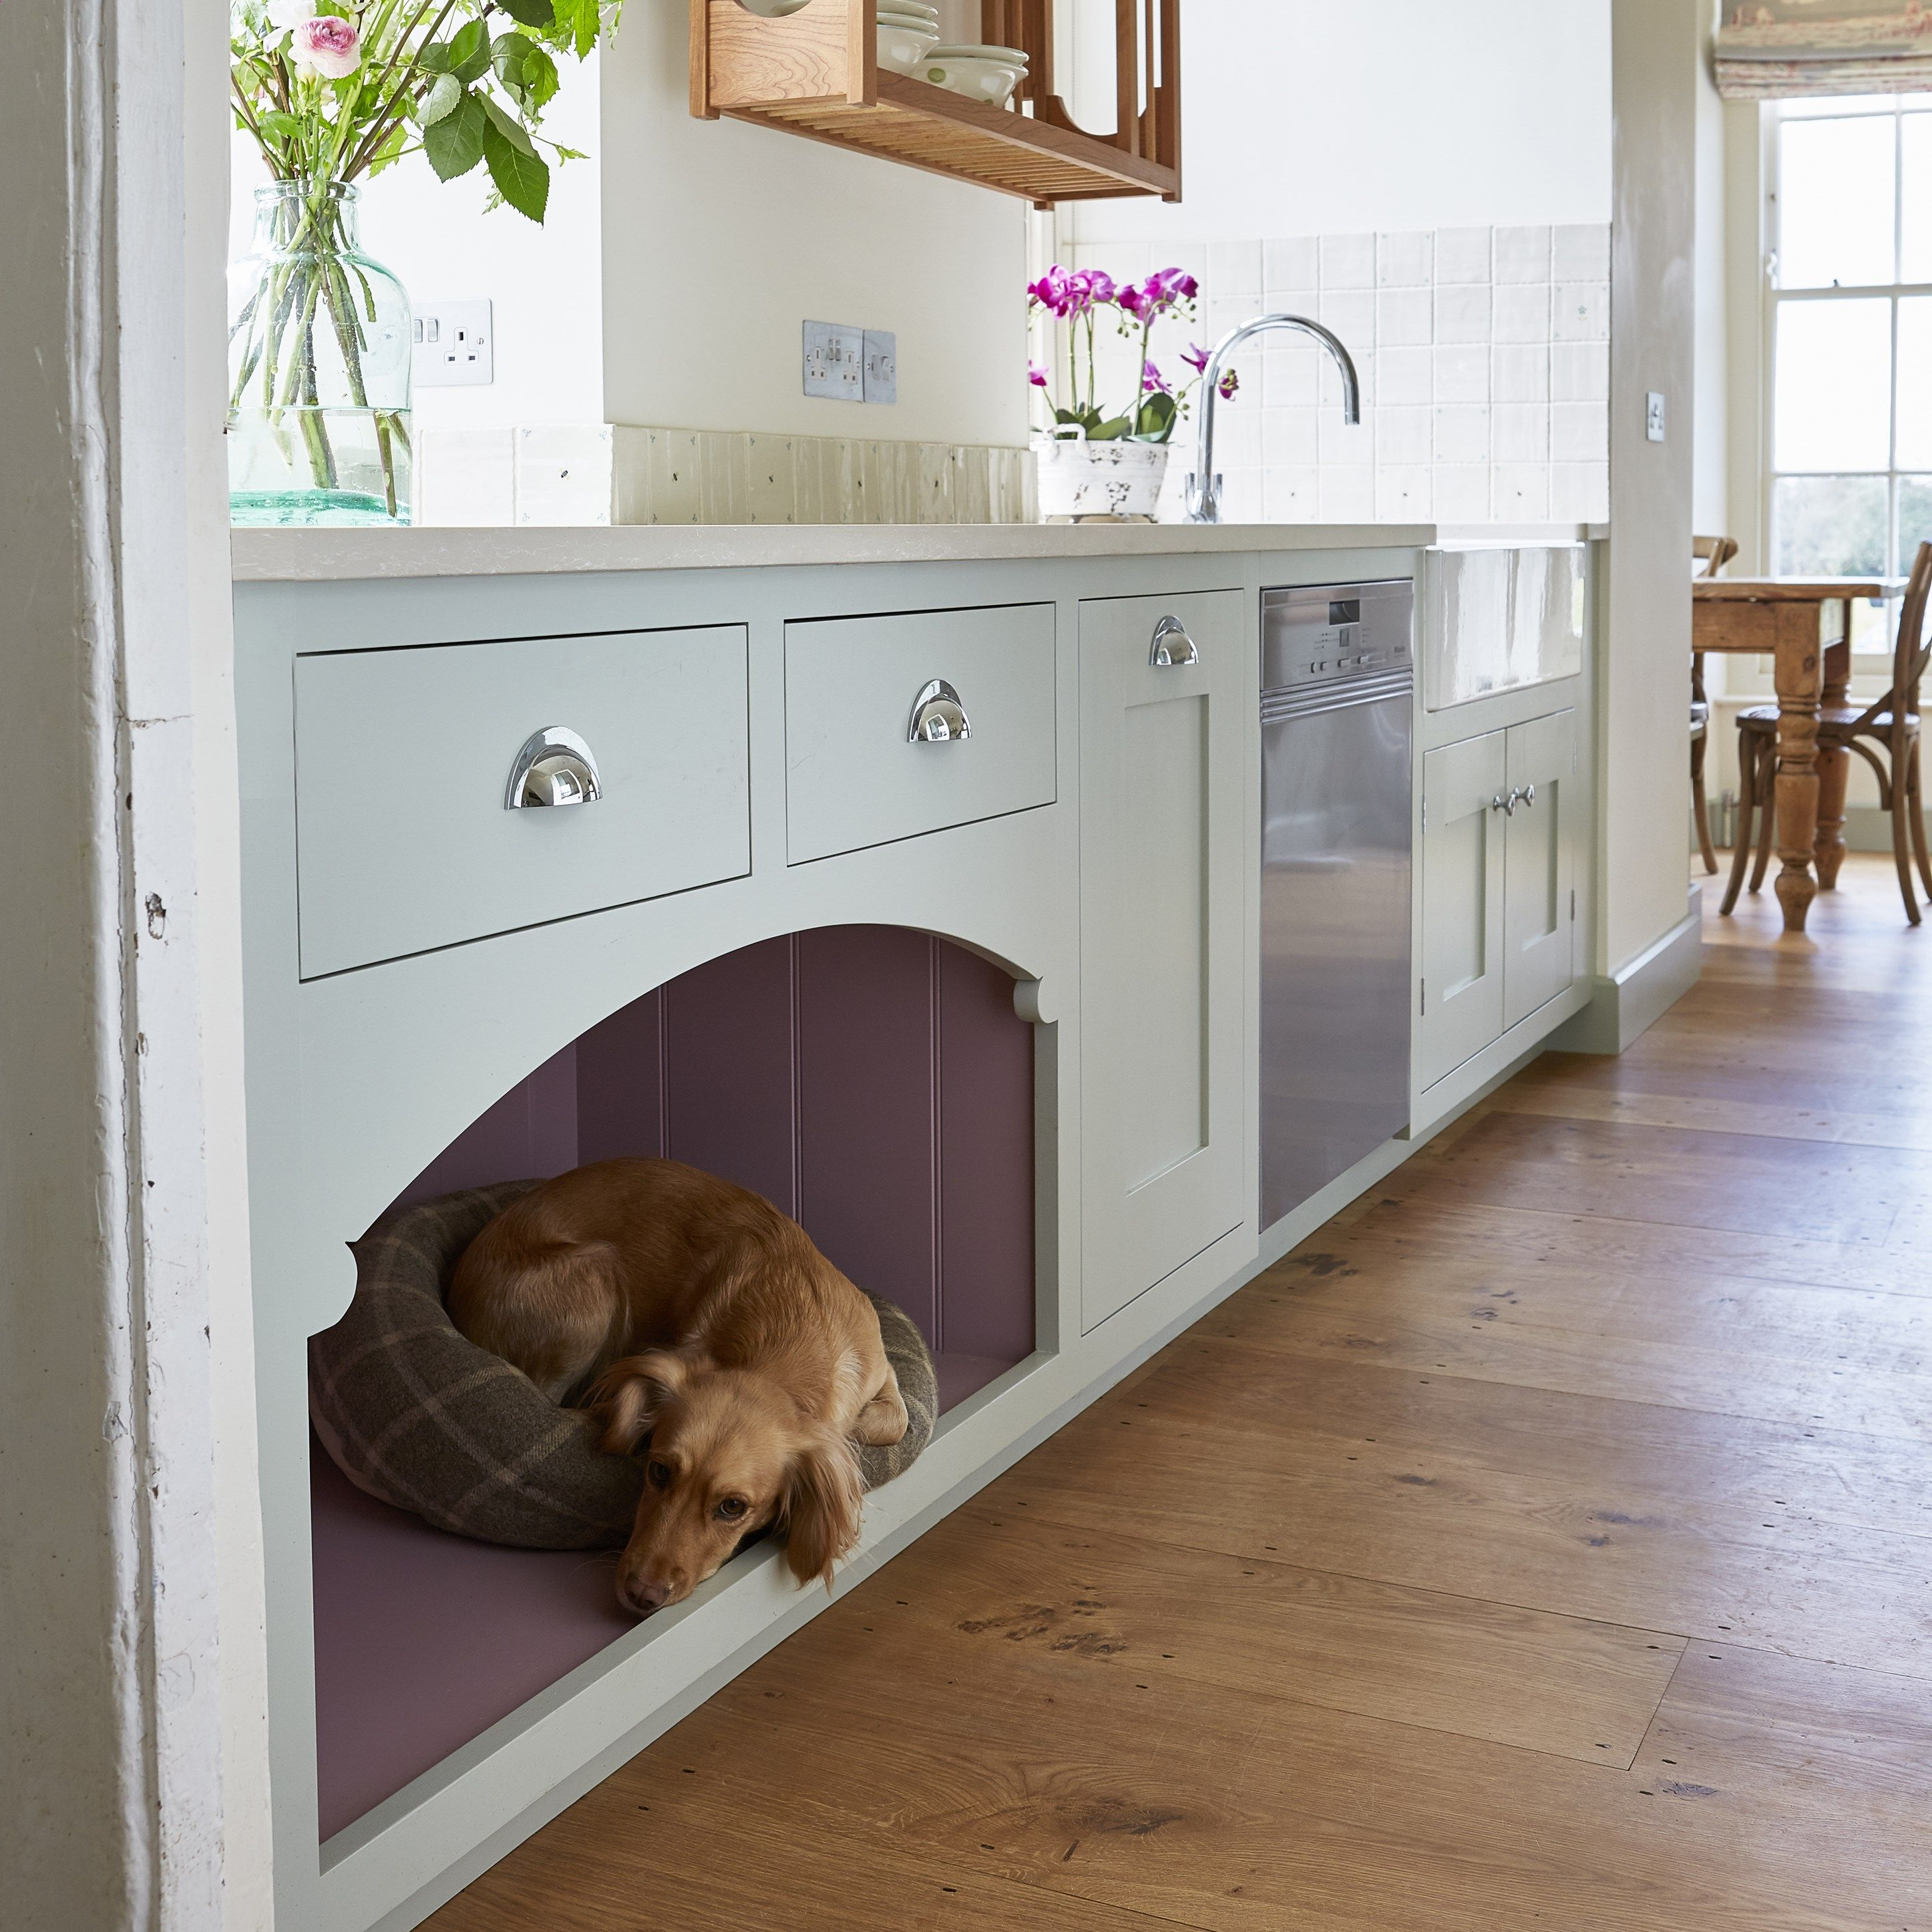 Home Design Ideas For Dogs: Bespoke Kitchen Dogs Bed. The Perfect Solution